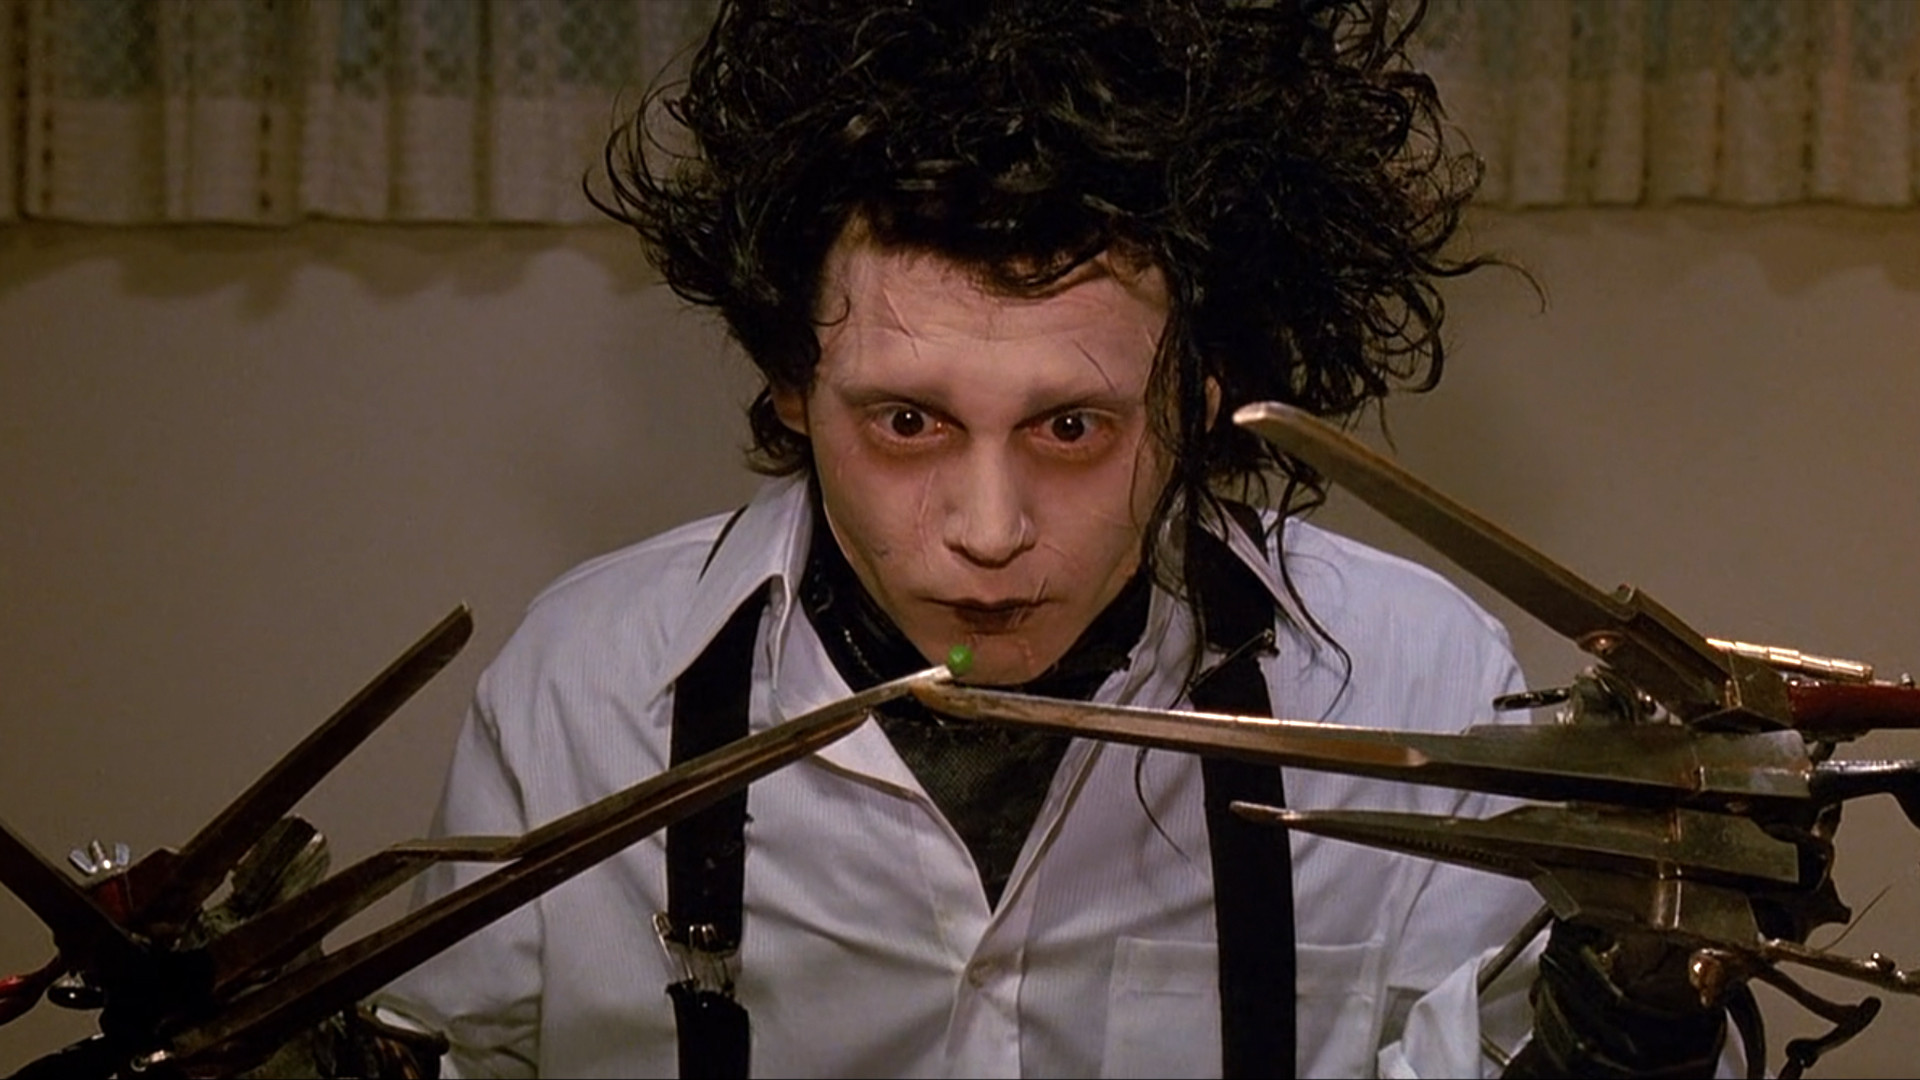 Edward-Scissorhands.jpg